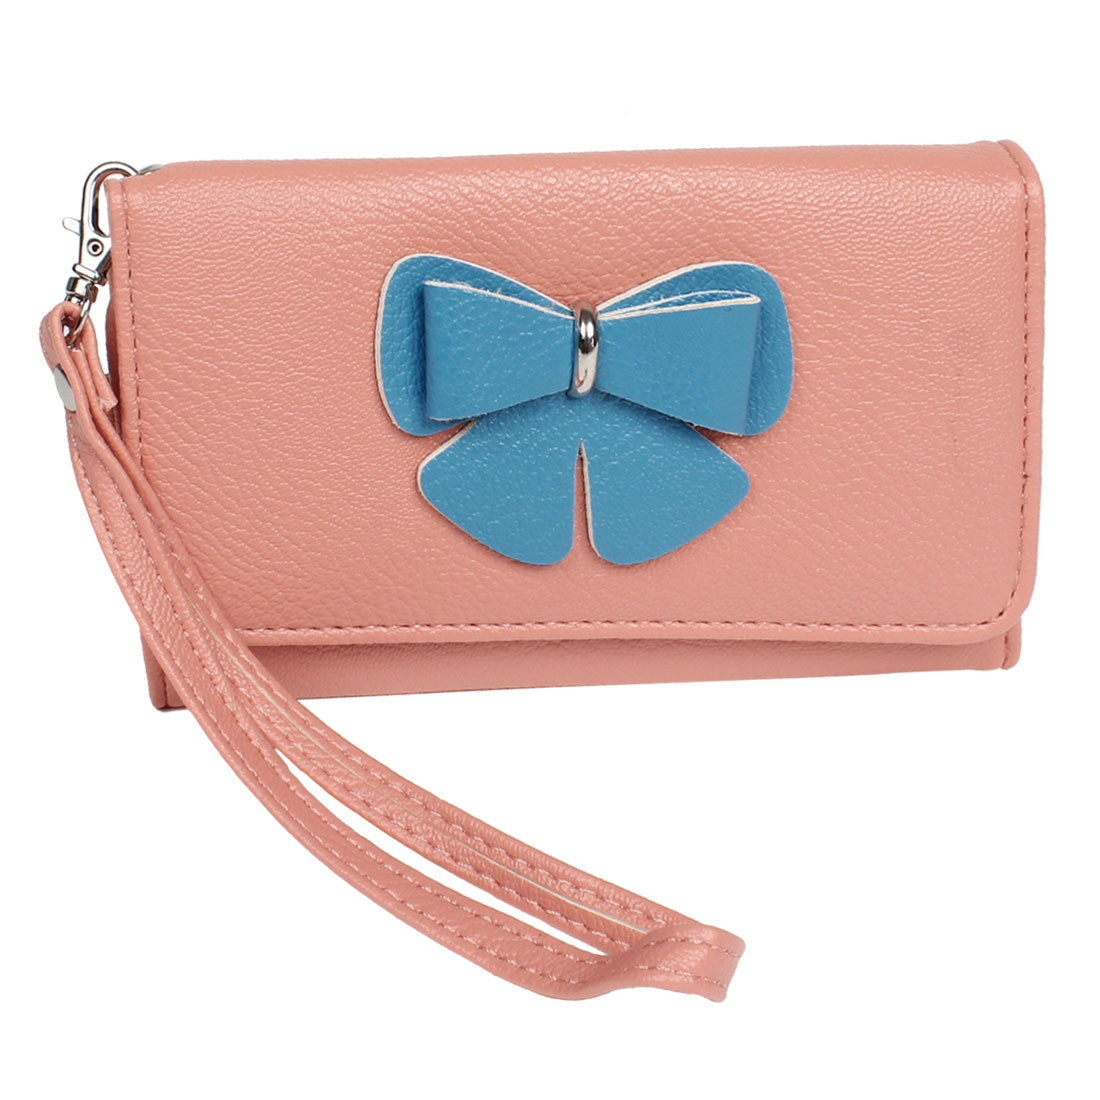 Hand Strap Bowtie Detail Pink Faux Leather Bag Card Holder Purse for Ladies